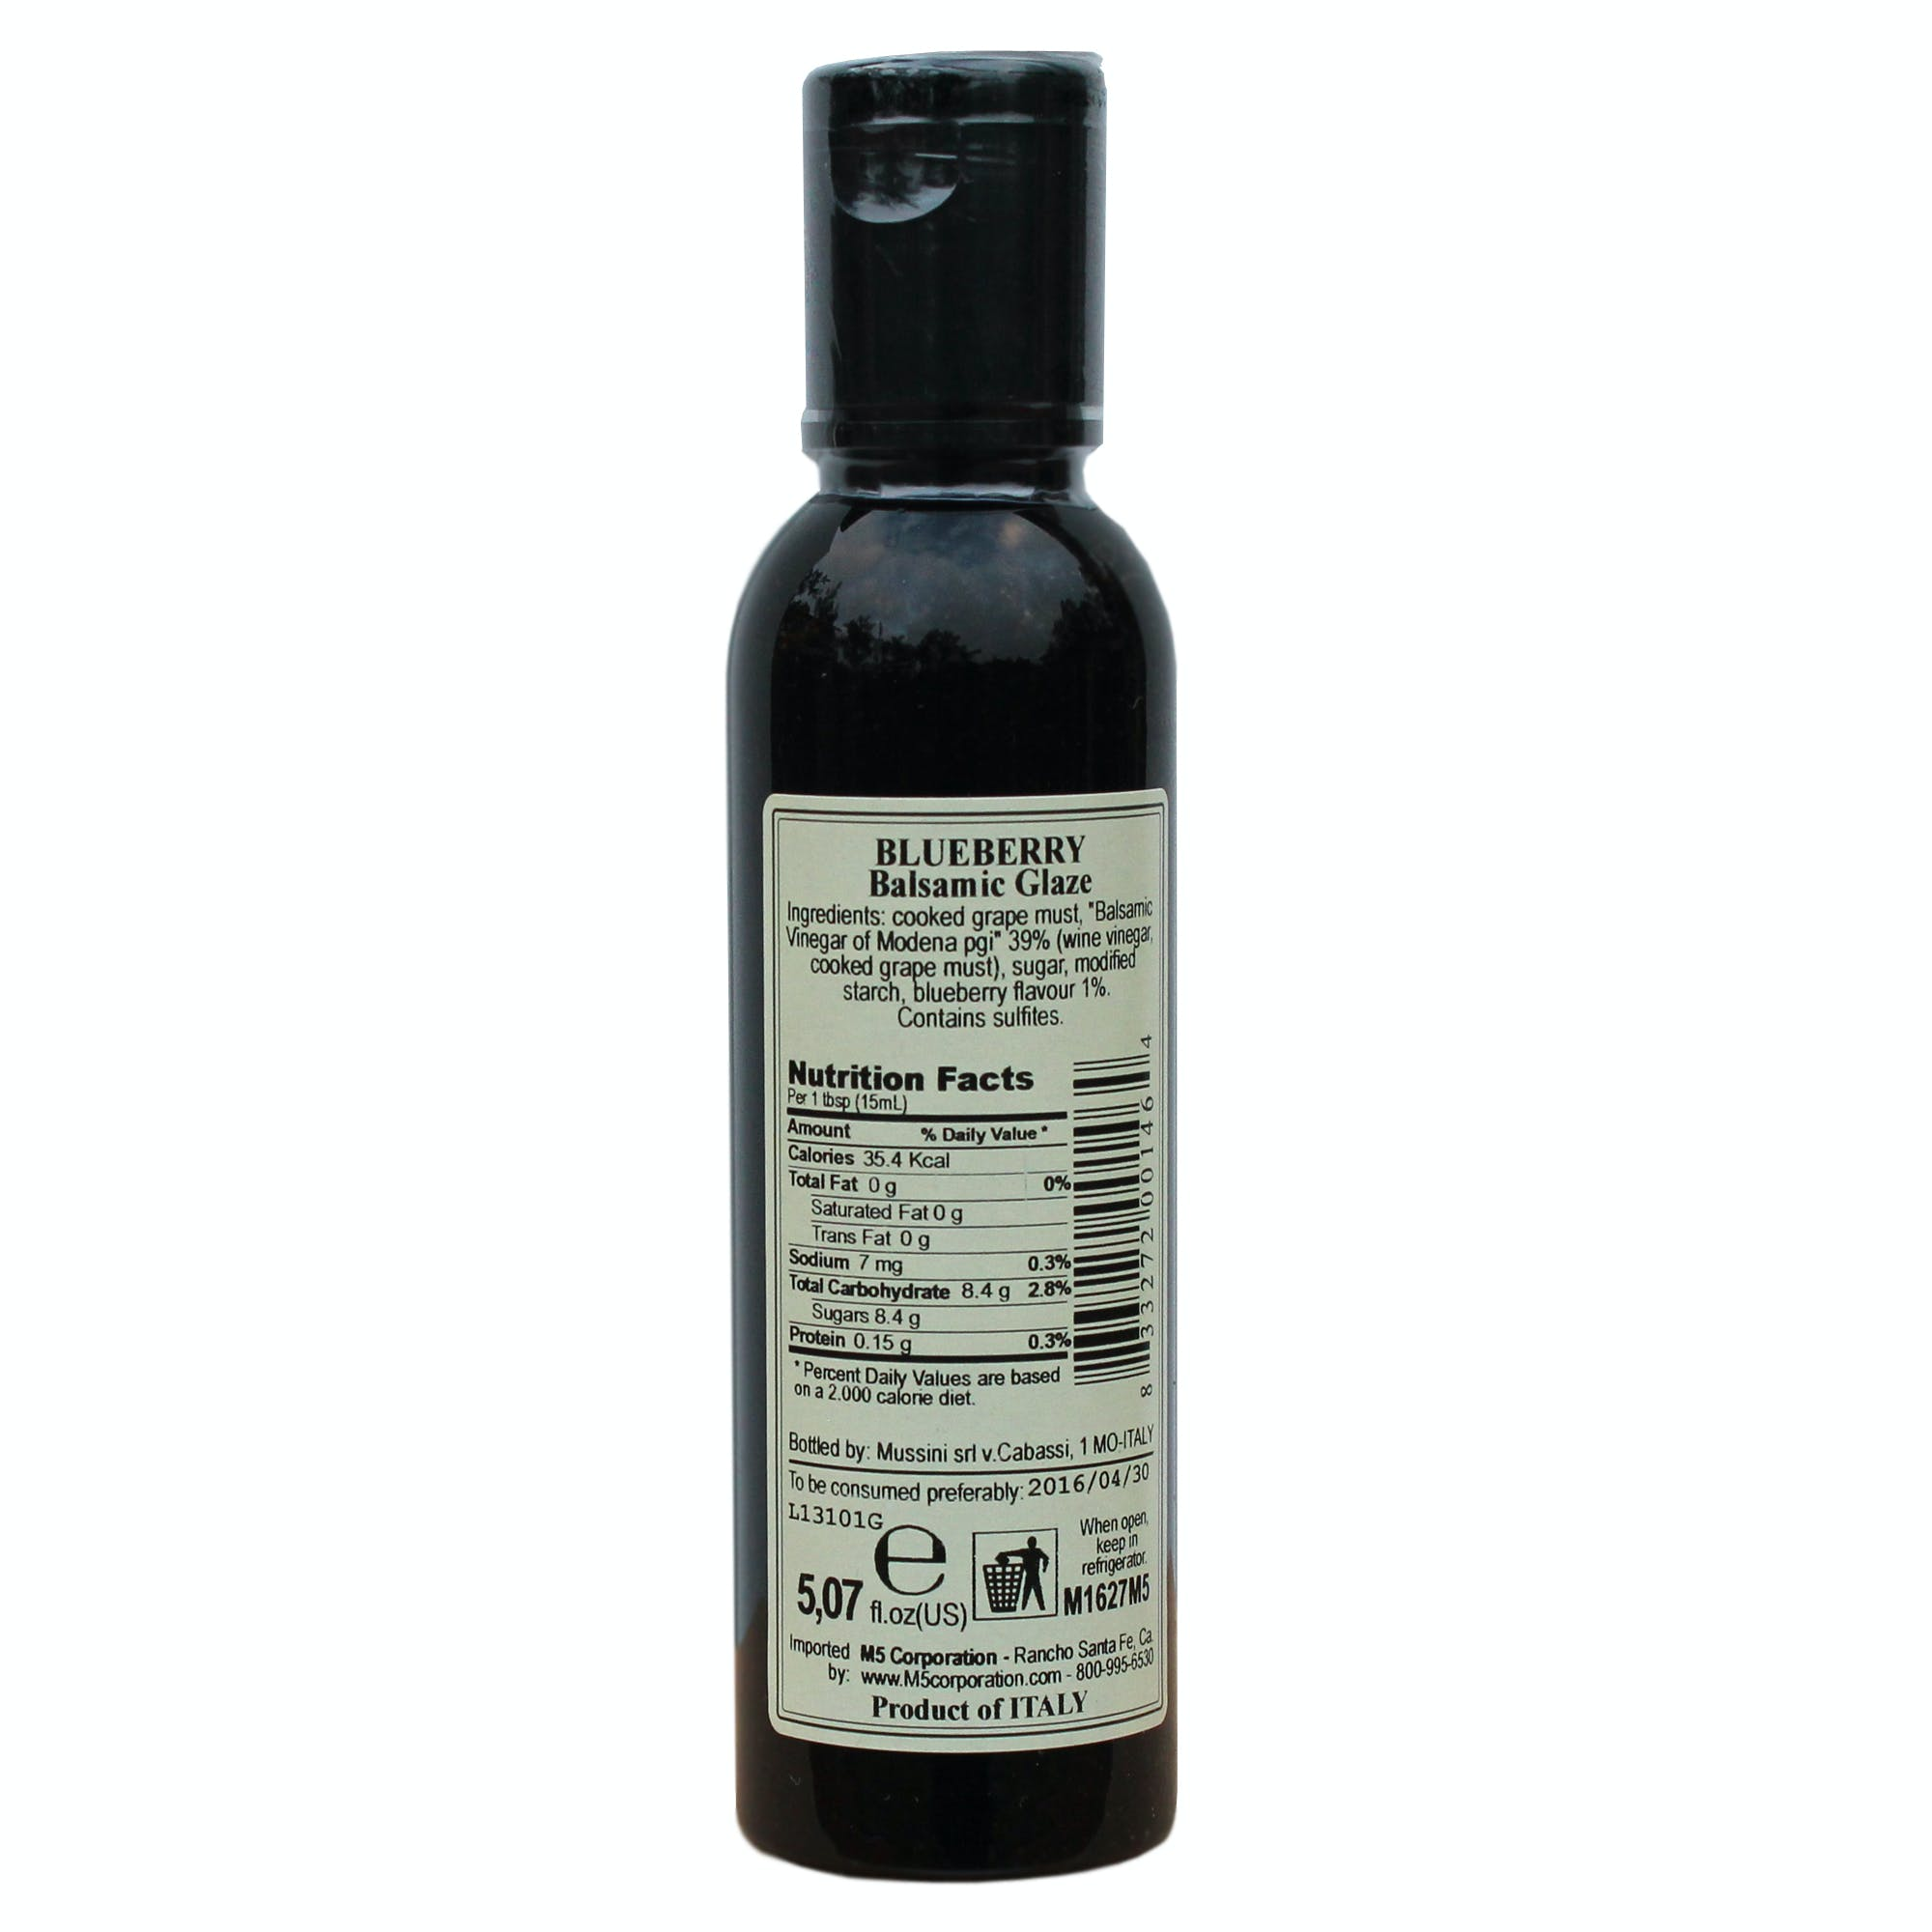 Italian Blueberry Balsamic Glazes From Mussini, 5.1 Ounces - sold by M5 Corporation